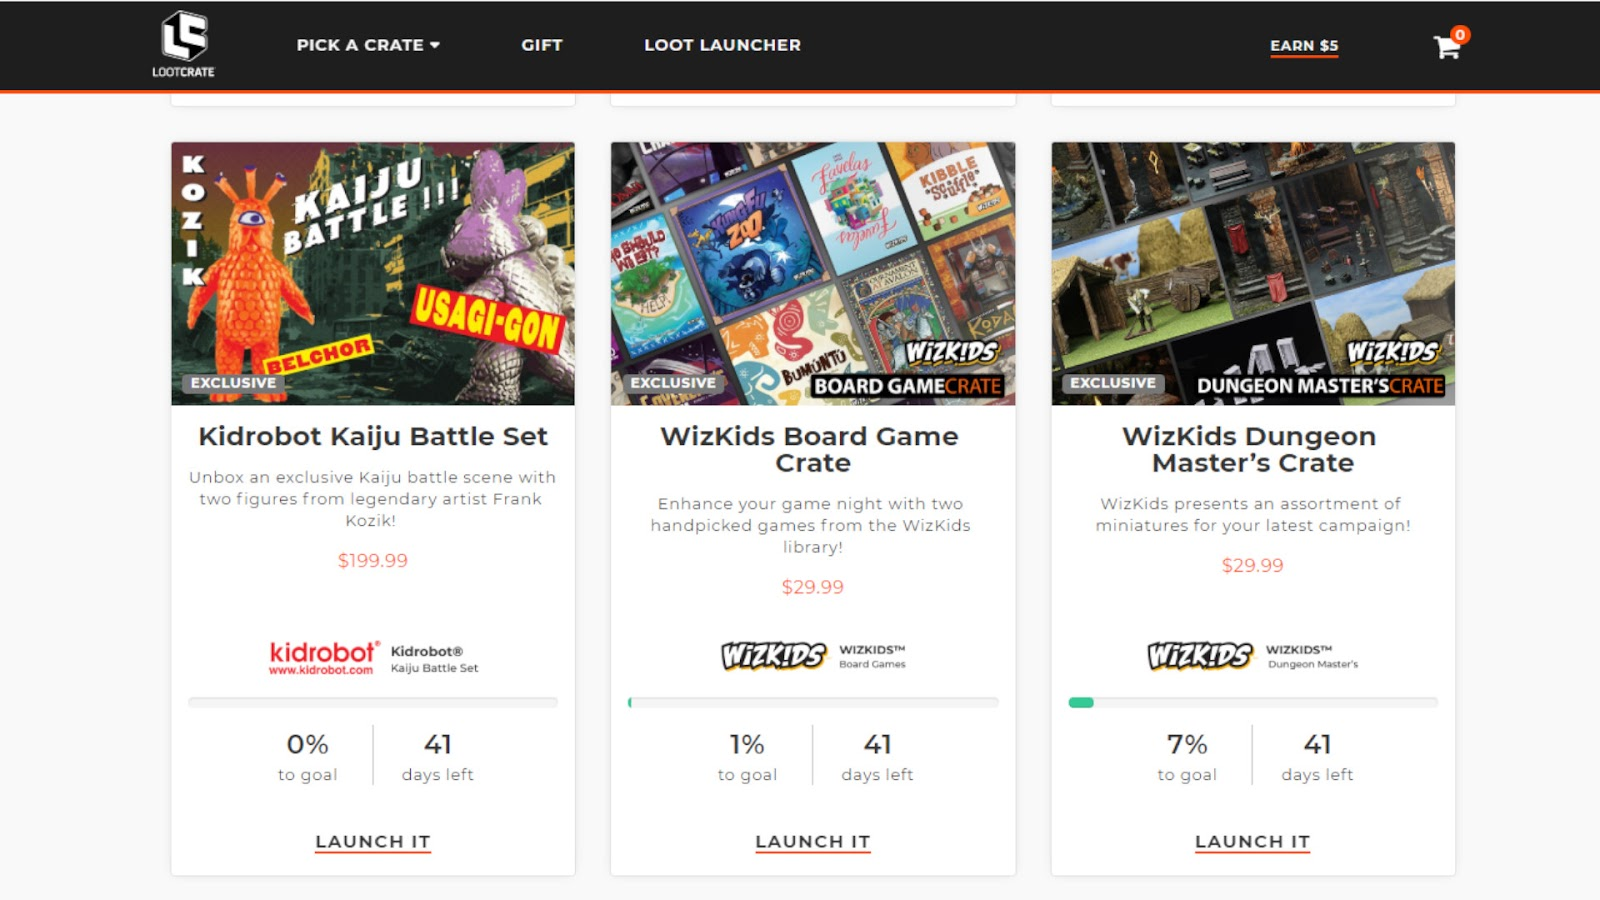 News Collider - Board Game News Loot Launcher